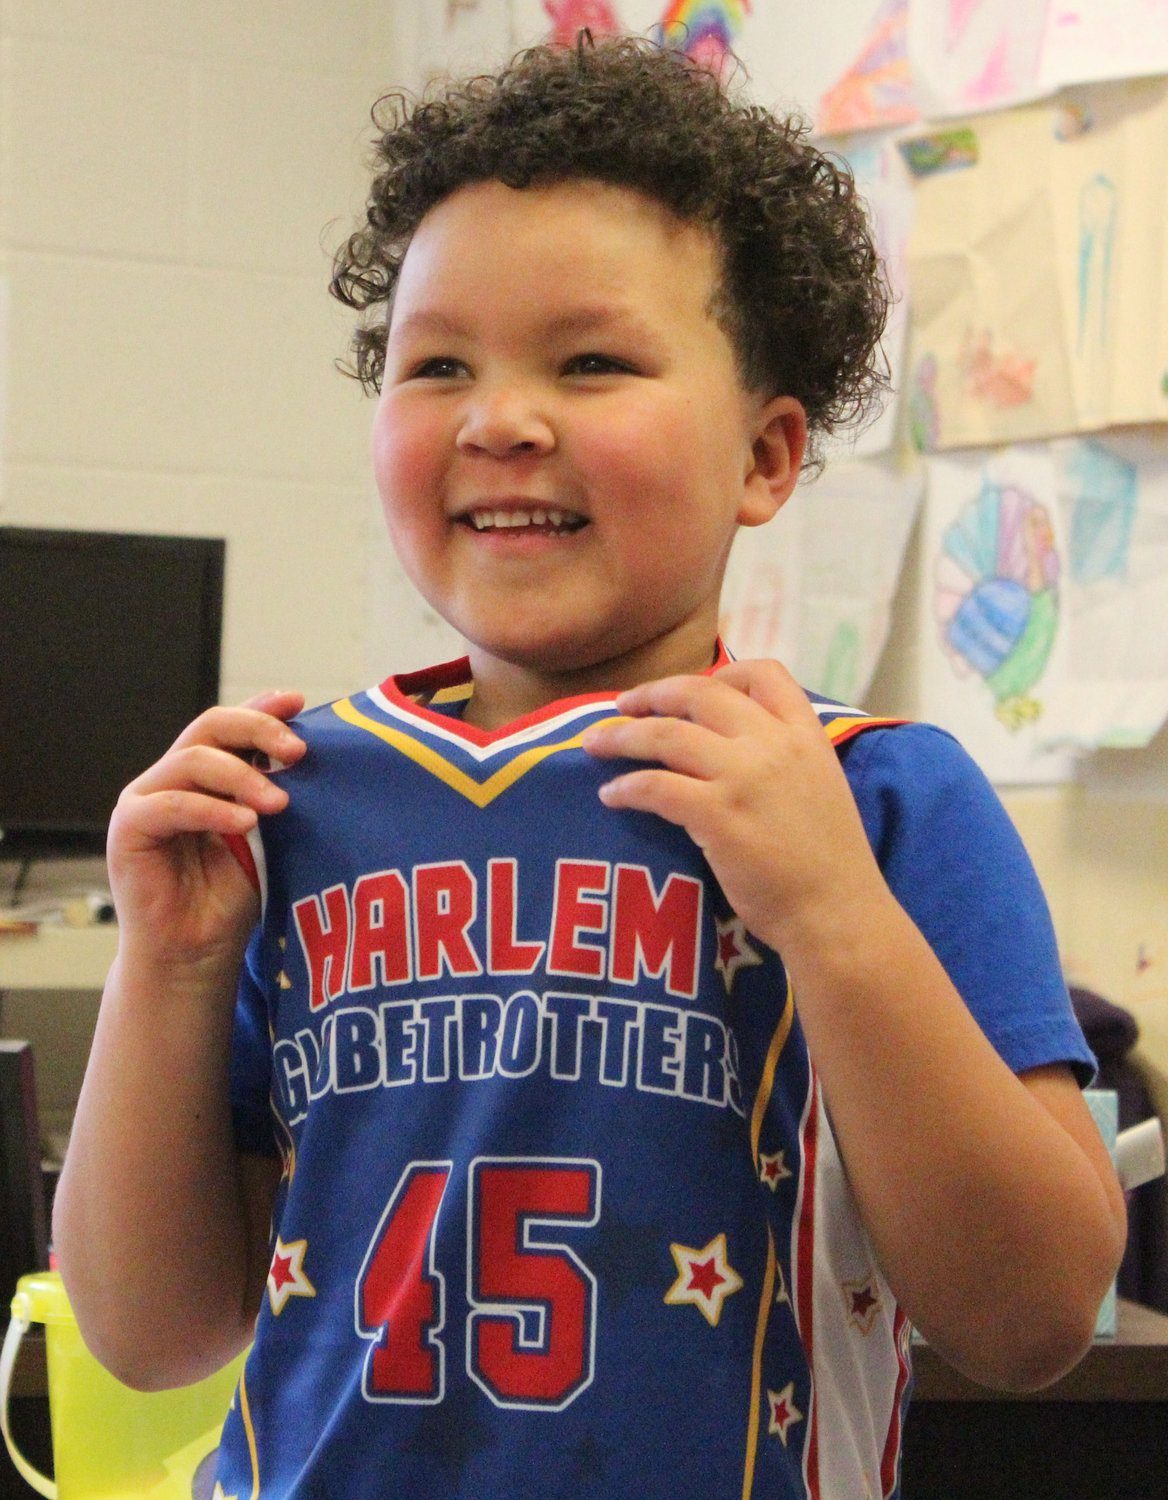 Kyrie Peay shows off his new Globetrotter jersey in his preschool classroom at Seven Sorrows on Feb. 6.